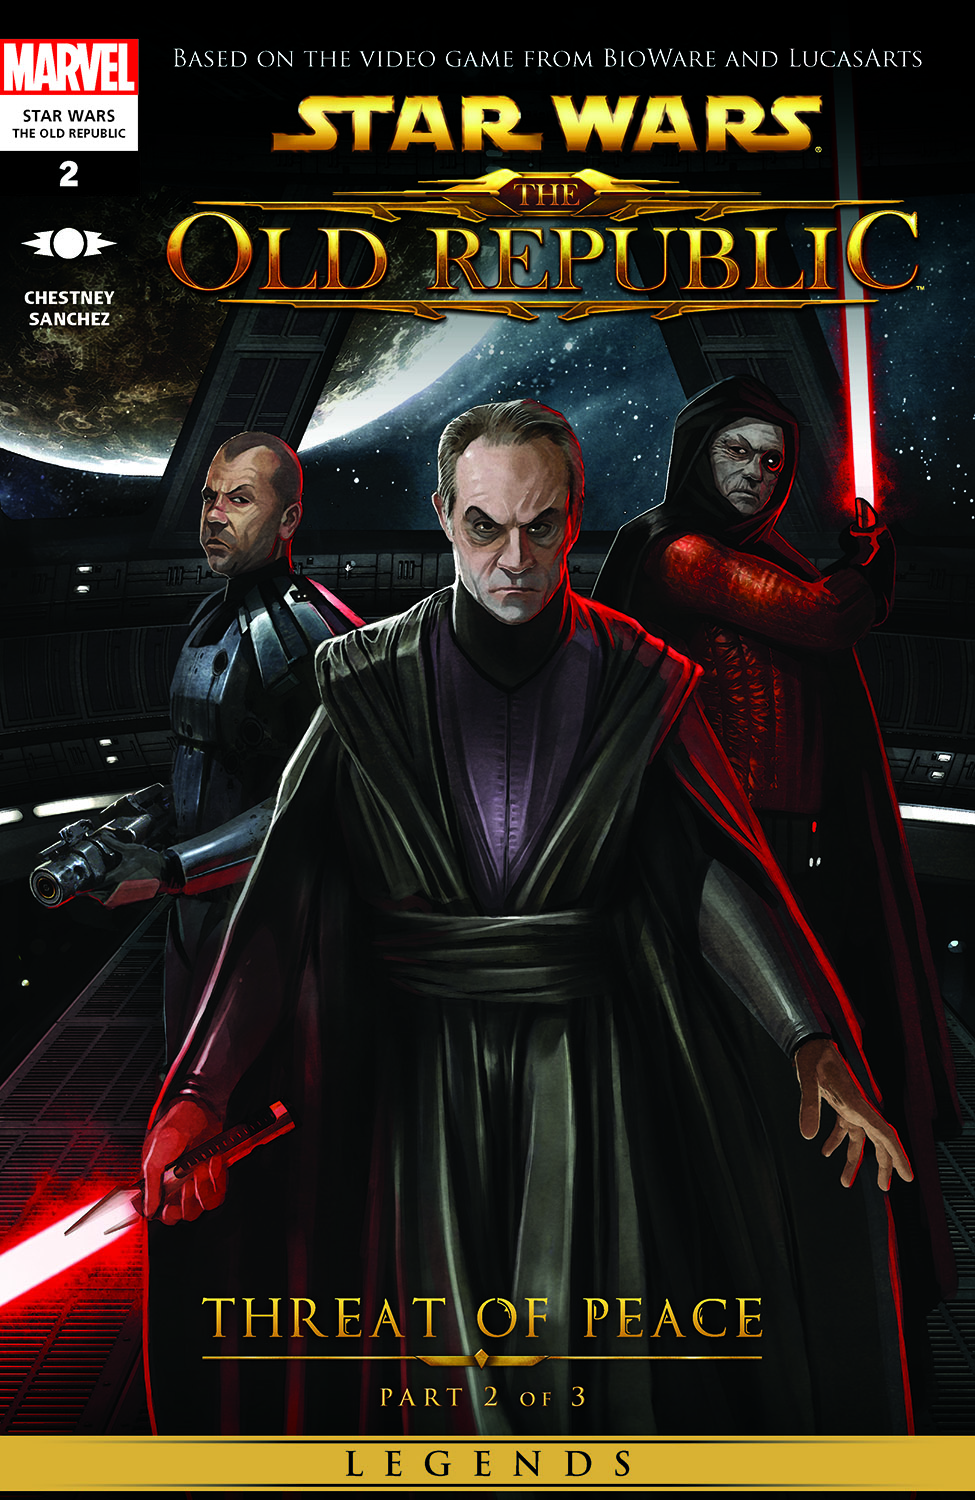 Star Wars: The Old Republic (2010) #2